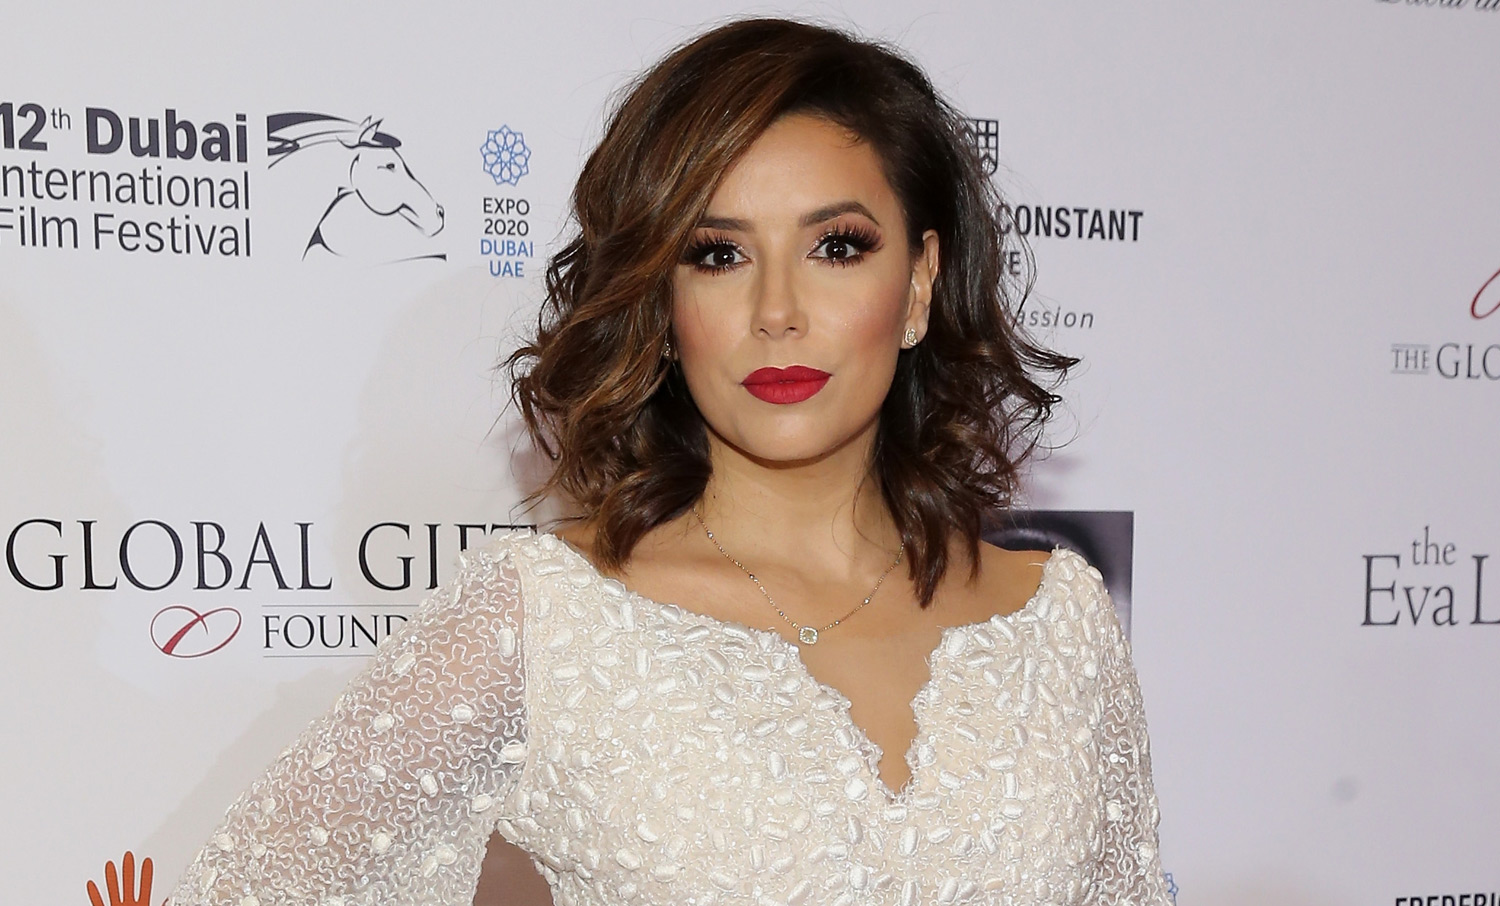 Eva Longoria Steps Out Global Gift Gala Before